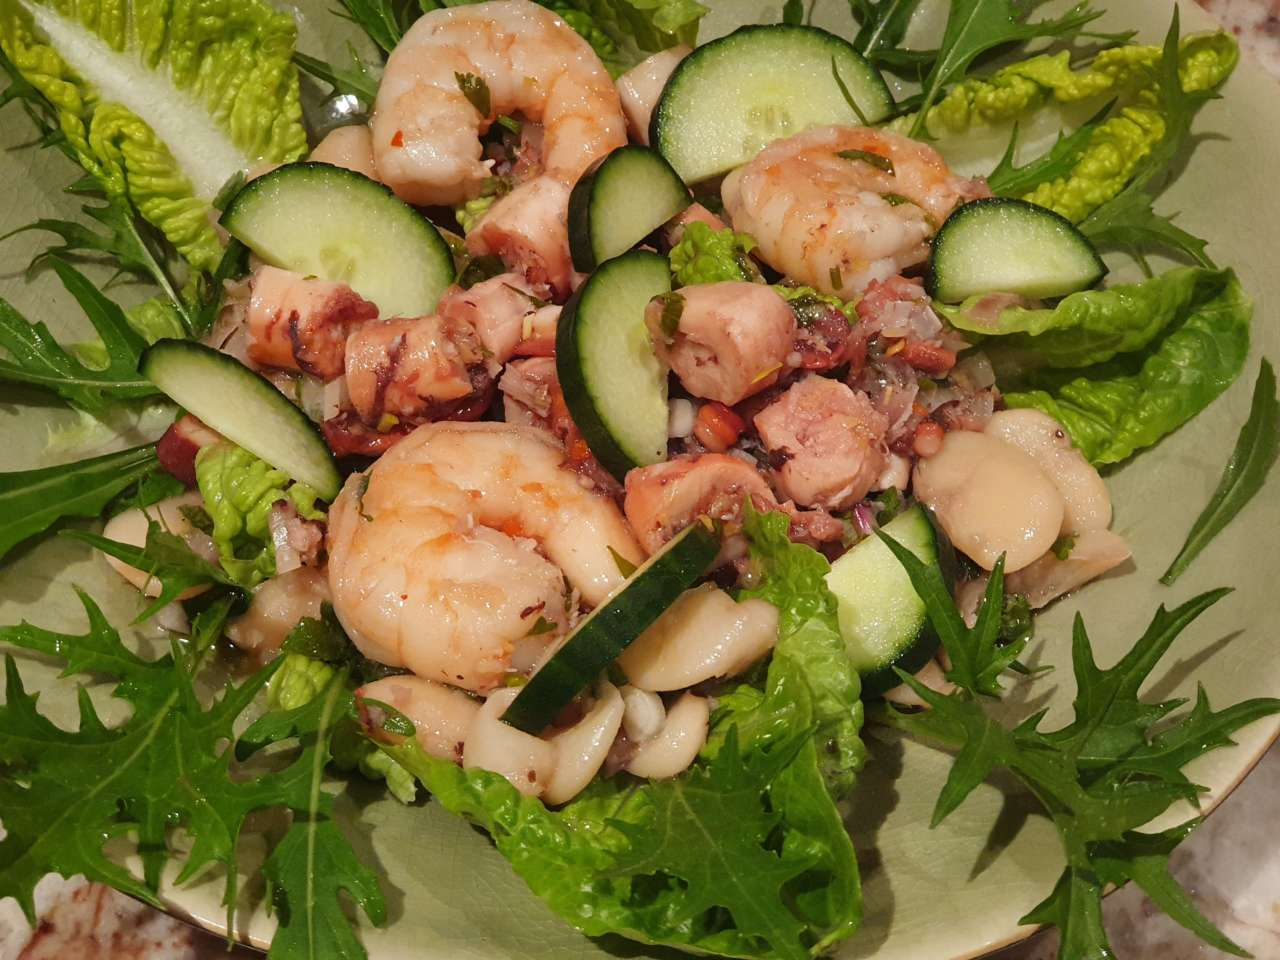 Bean salad with octopus and prawns